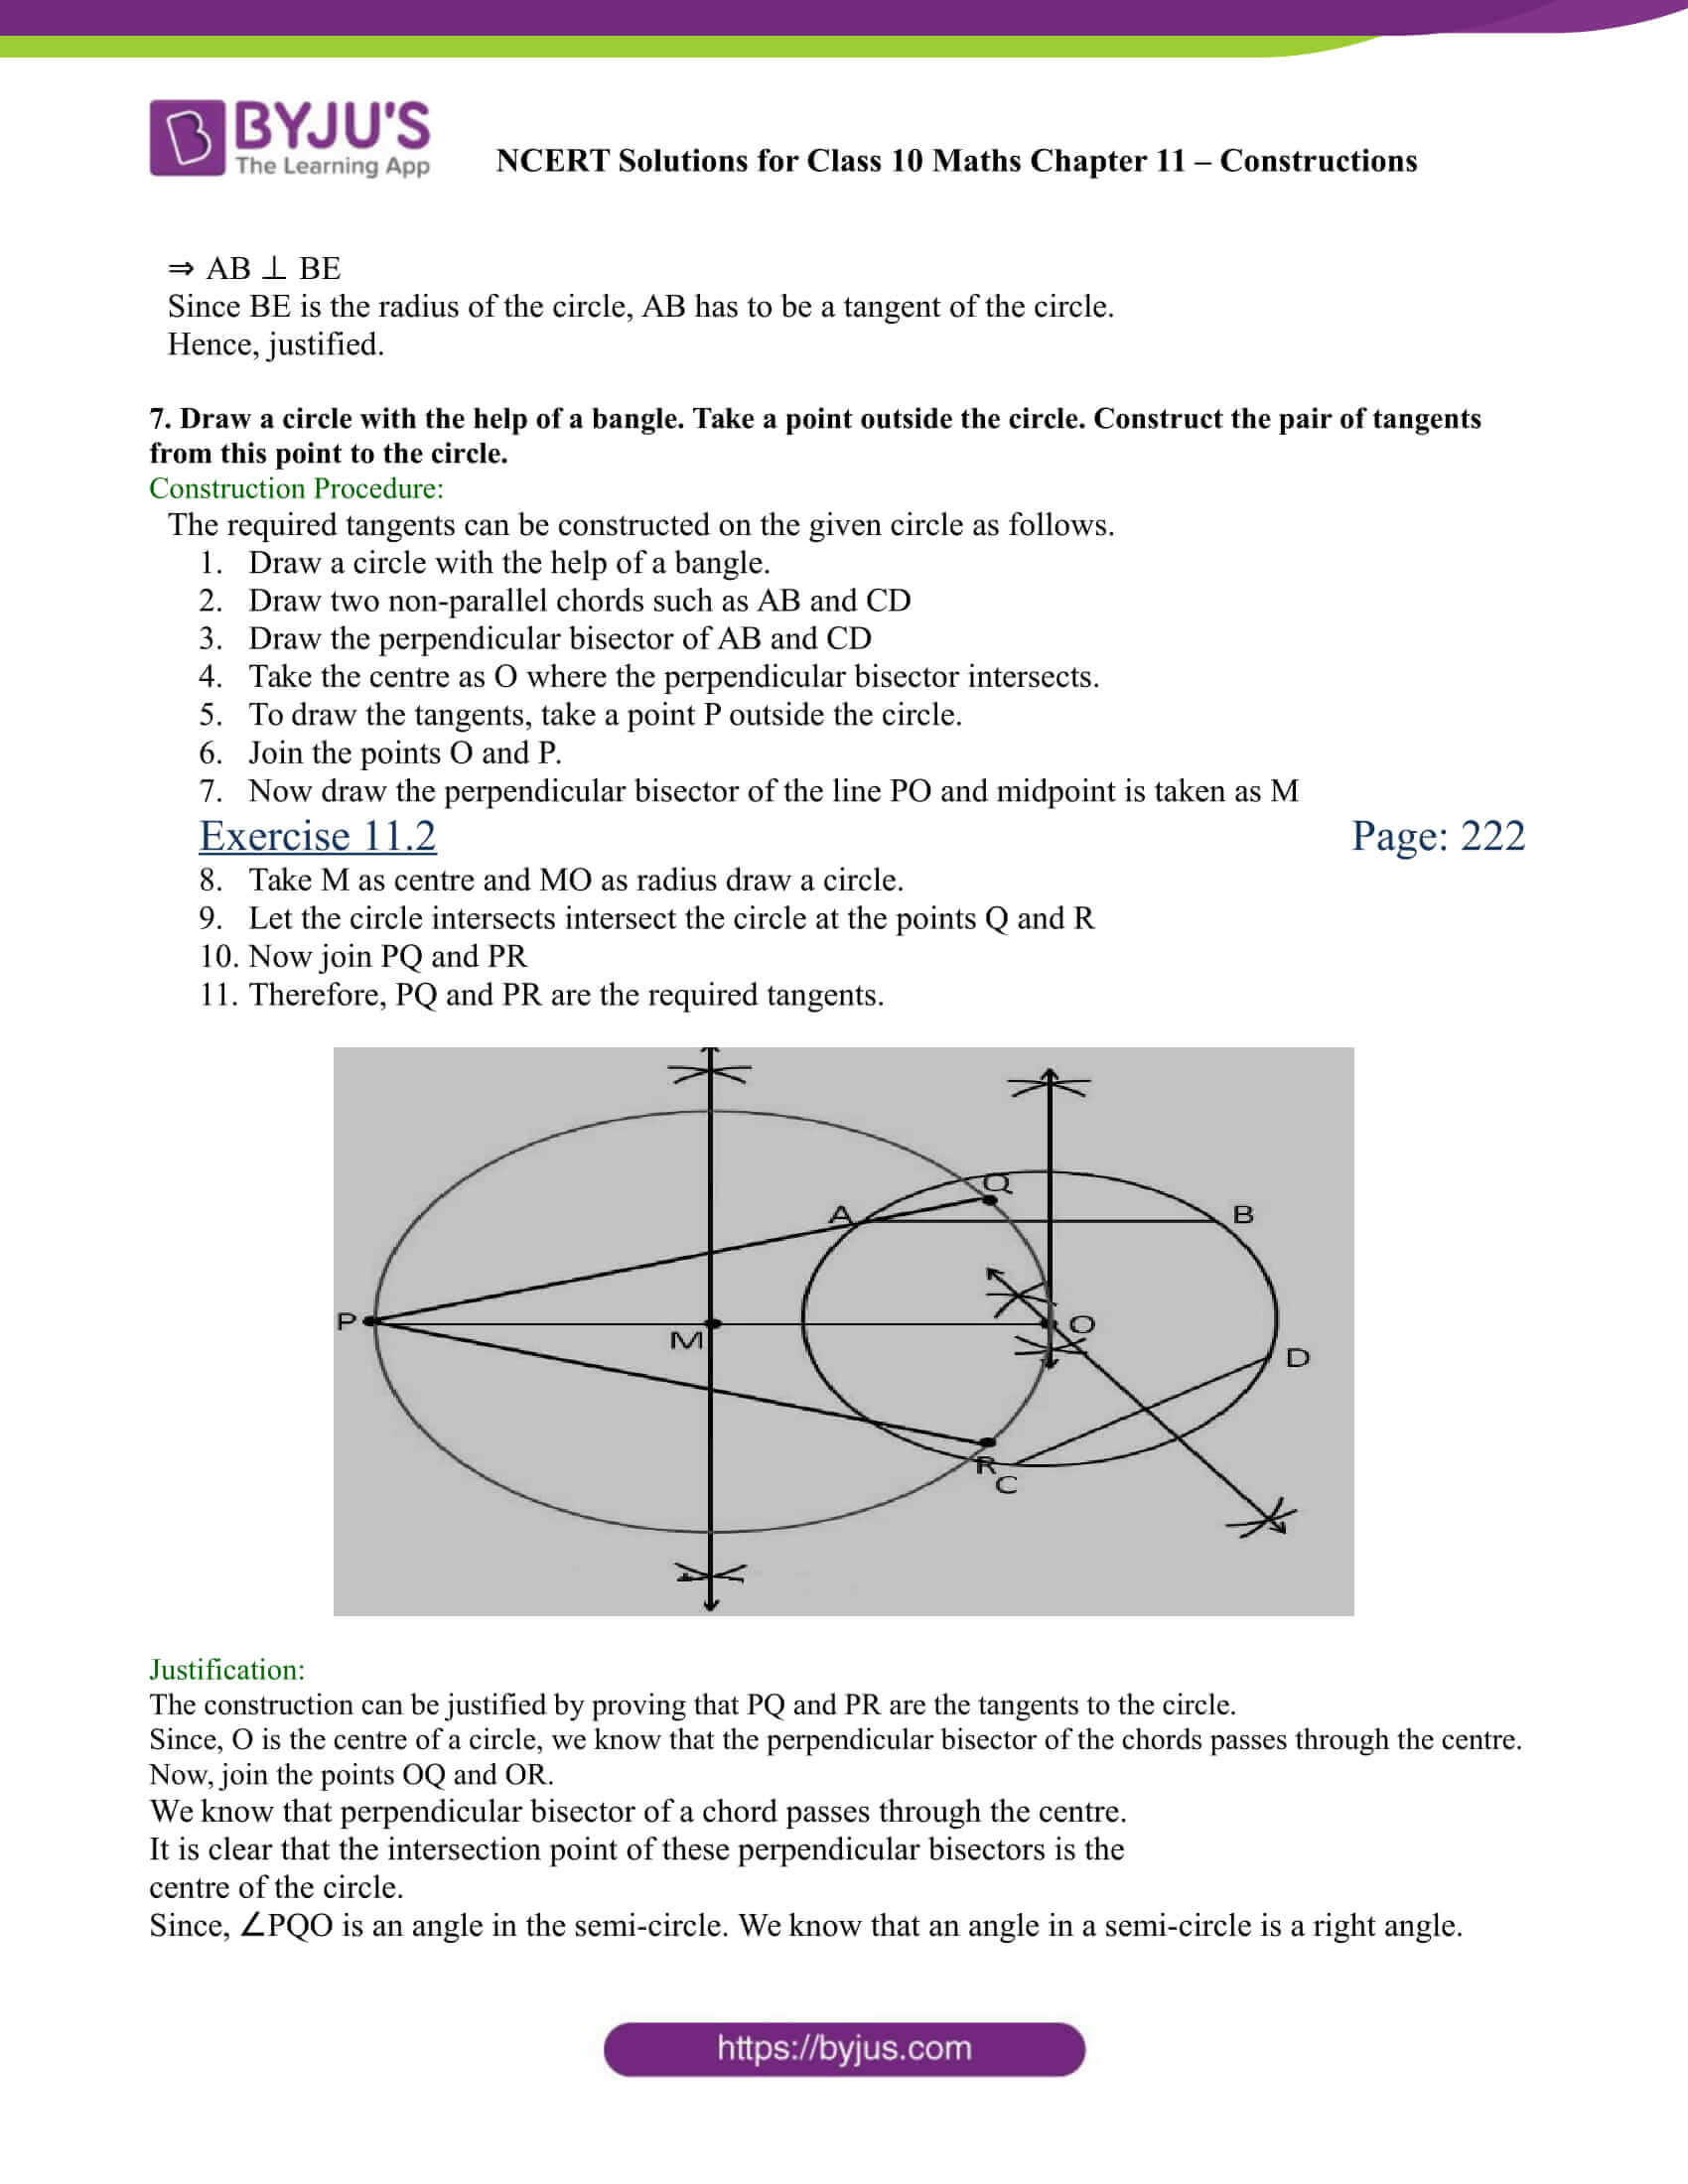 NCERT Solutions for class 10 chapter 11 Constructions Part 16